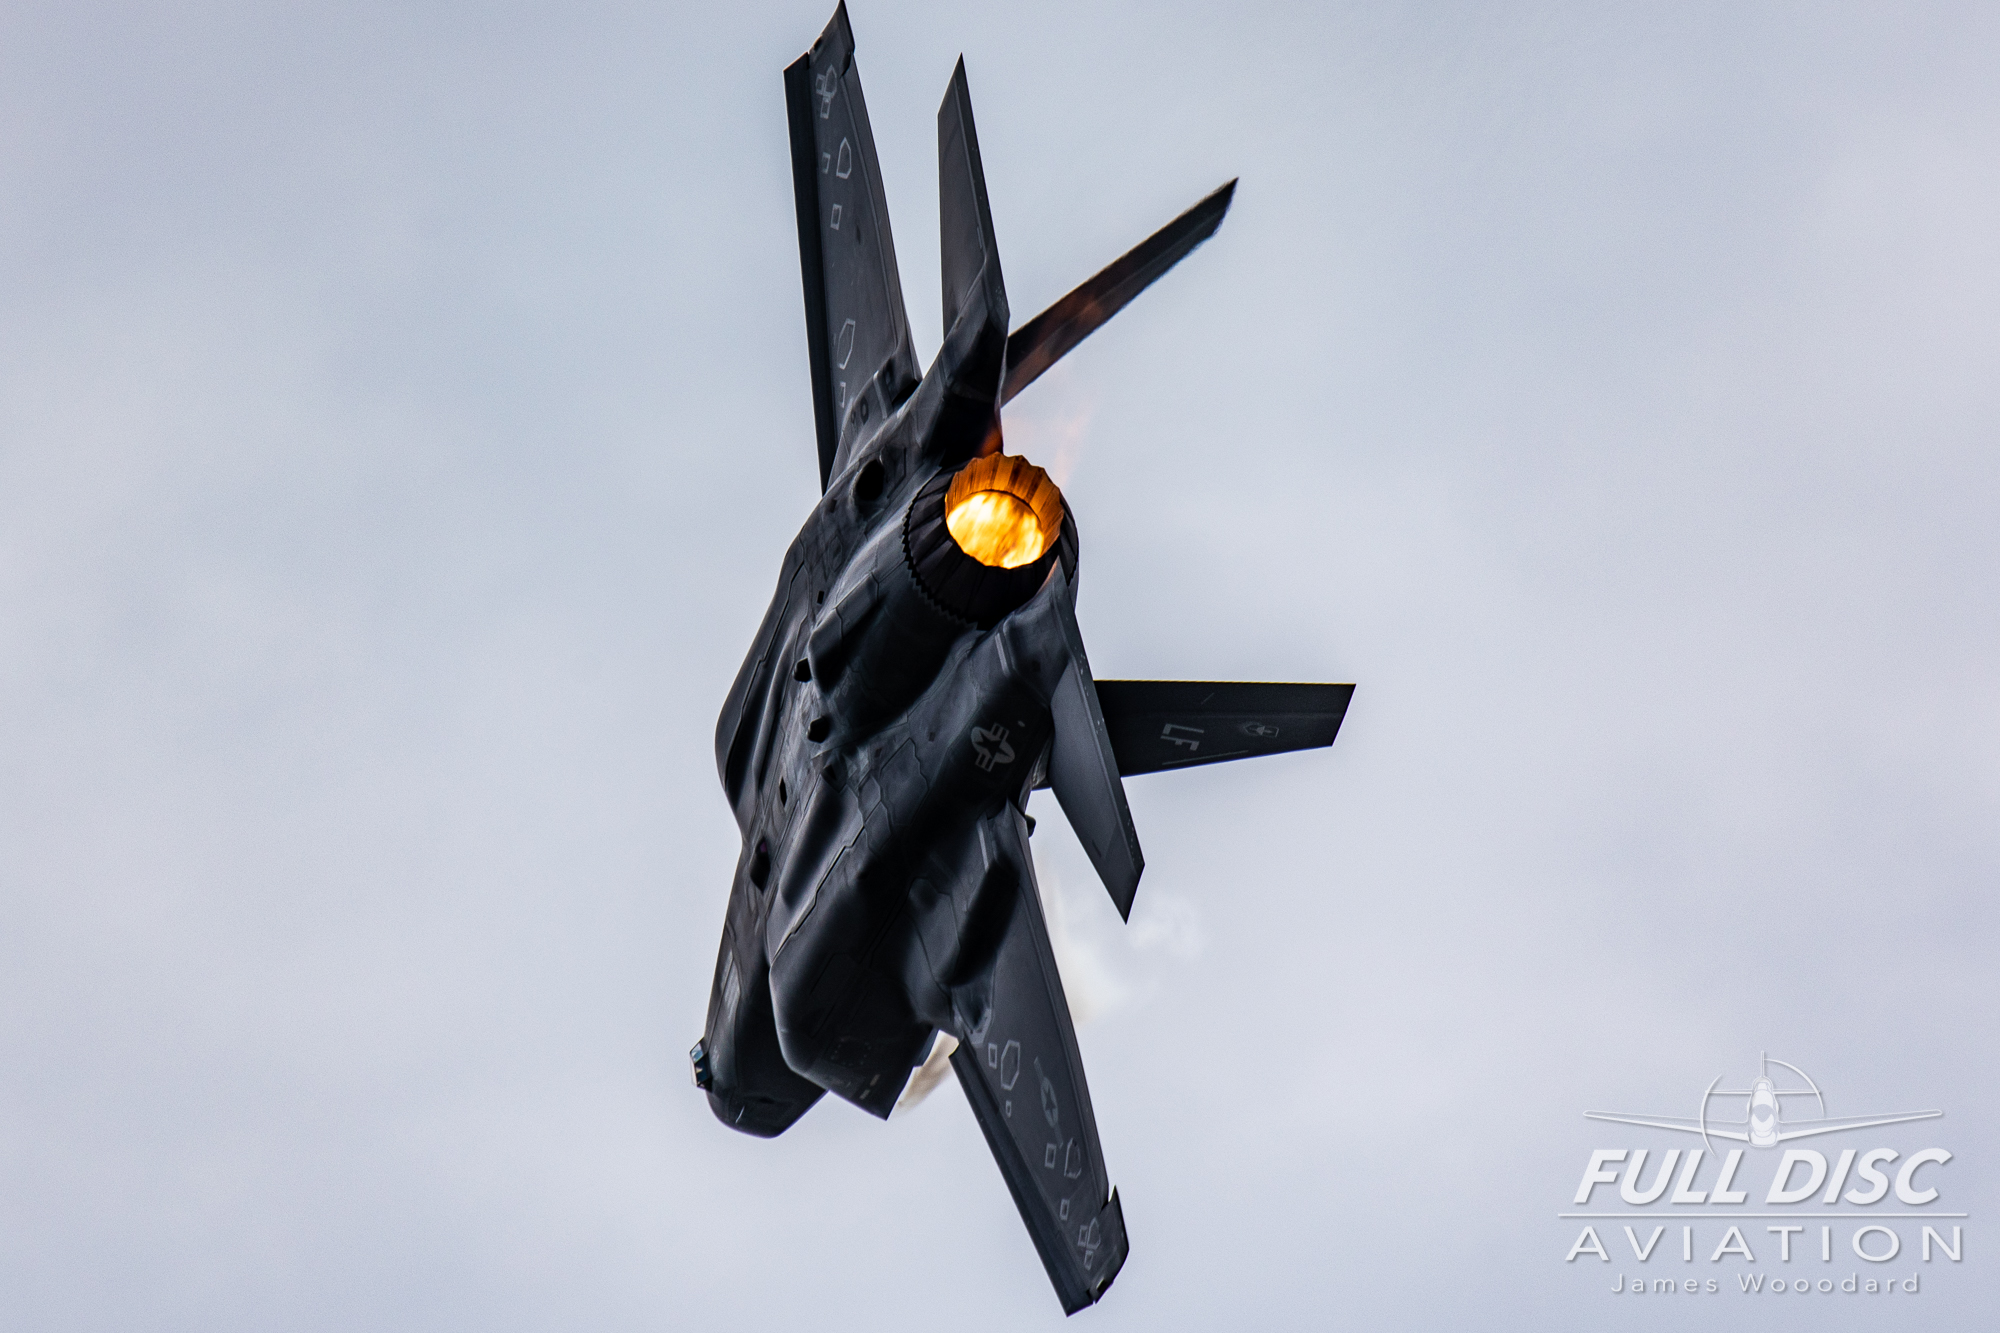 FullDiscAviation_JamesWoodard-April 28, 2019-118.jpg